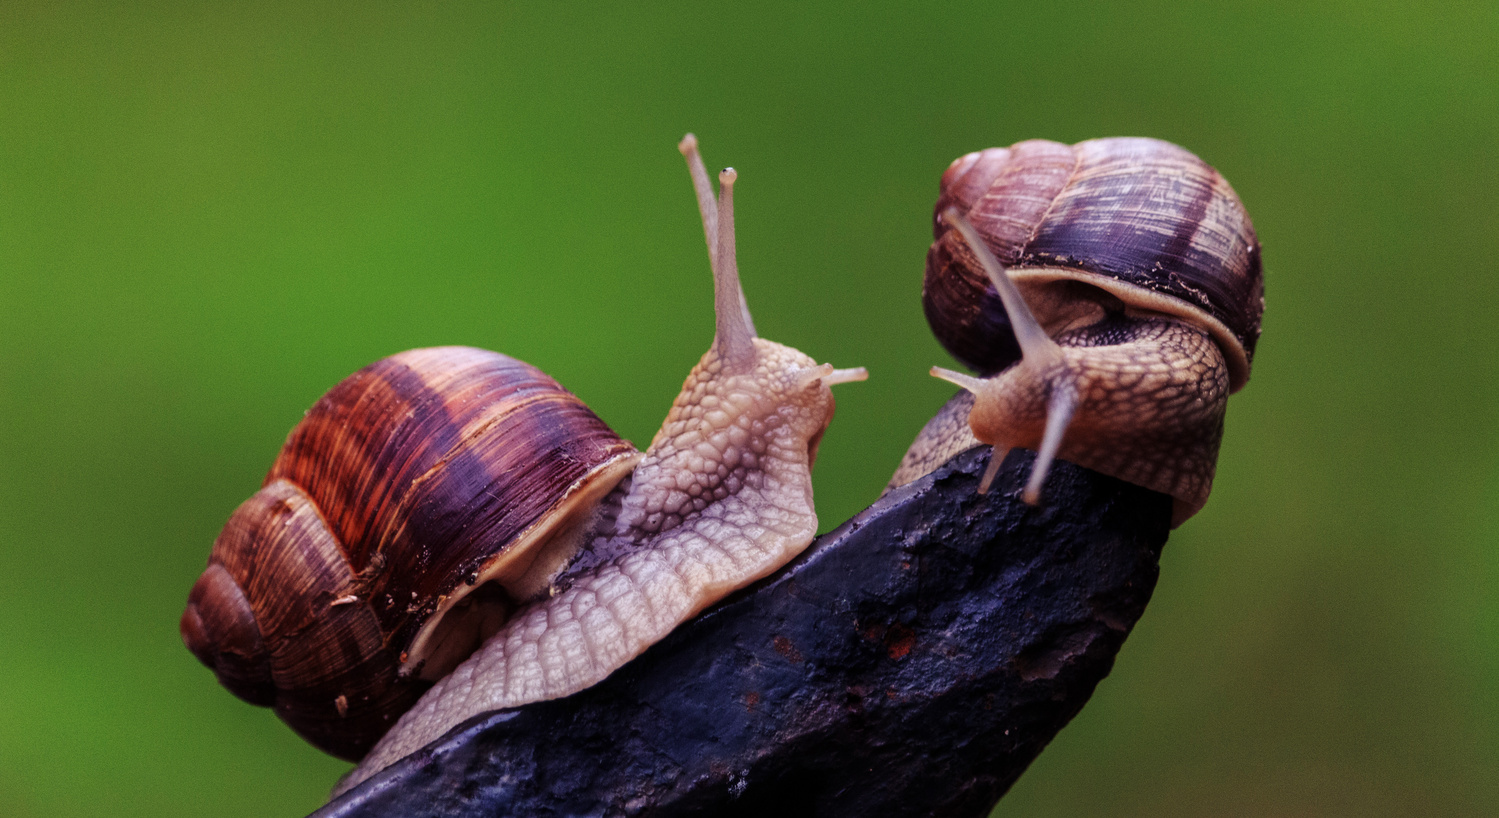 the snails are talking by Robert Tas